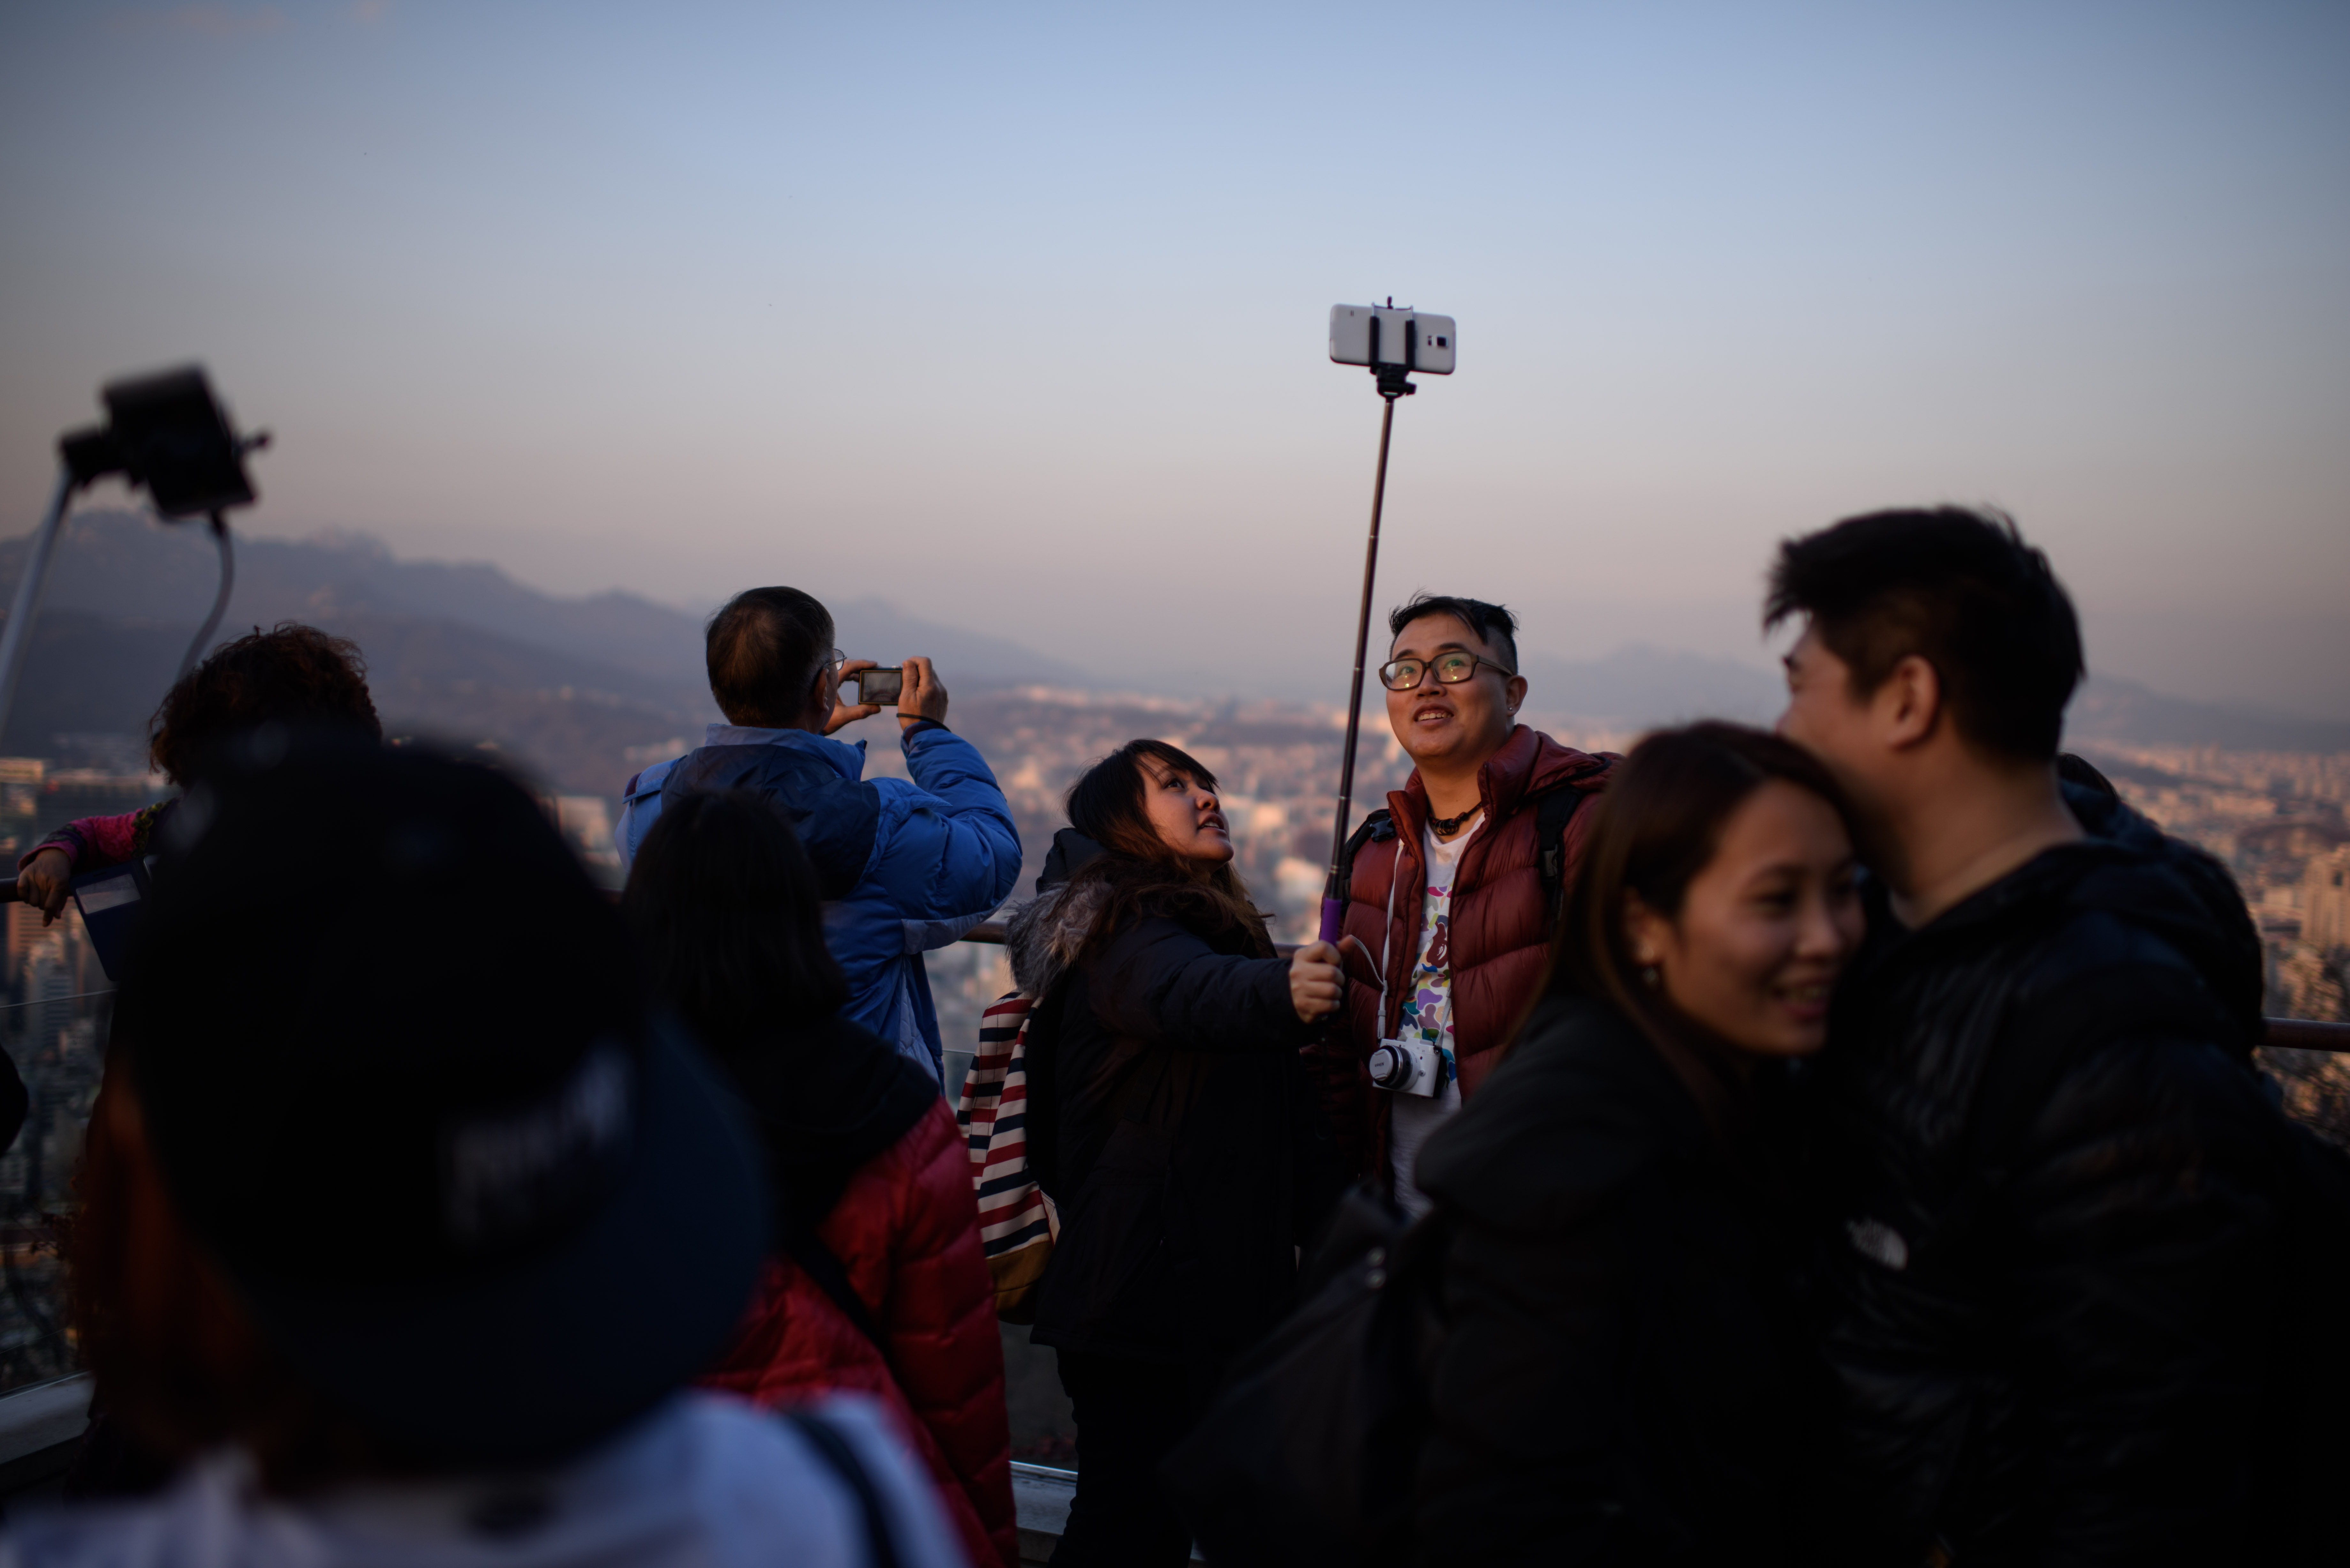 People use a 'selfie stick' to take a group photo overlooking the city skyline in Seoul, South Korea, on Nov. 26, 2014